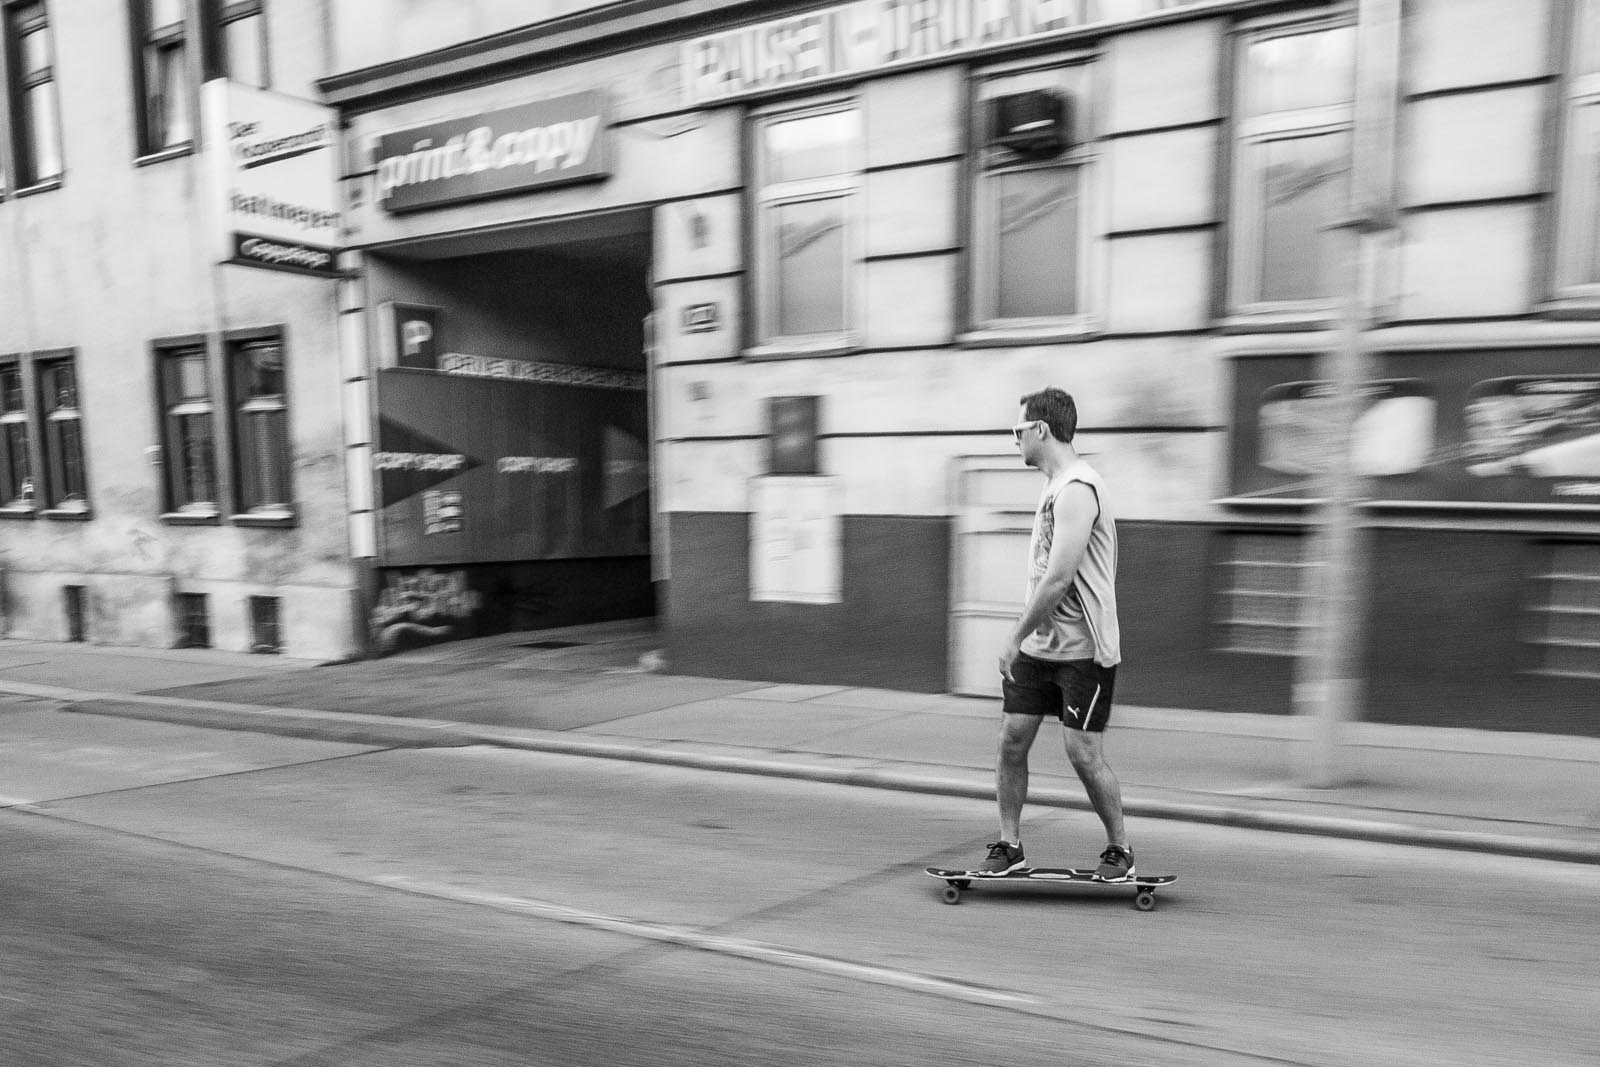 Rene, keeping pace on his longboard during the downhill parts.